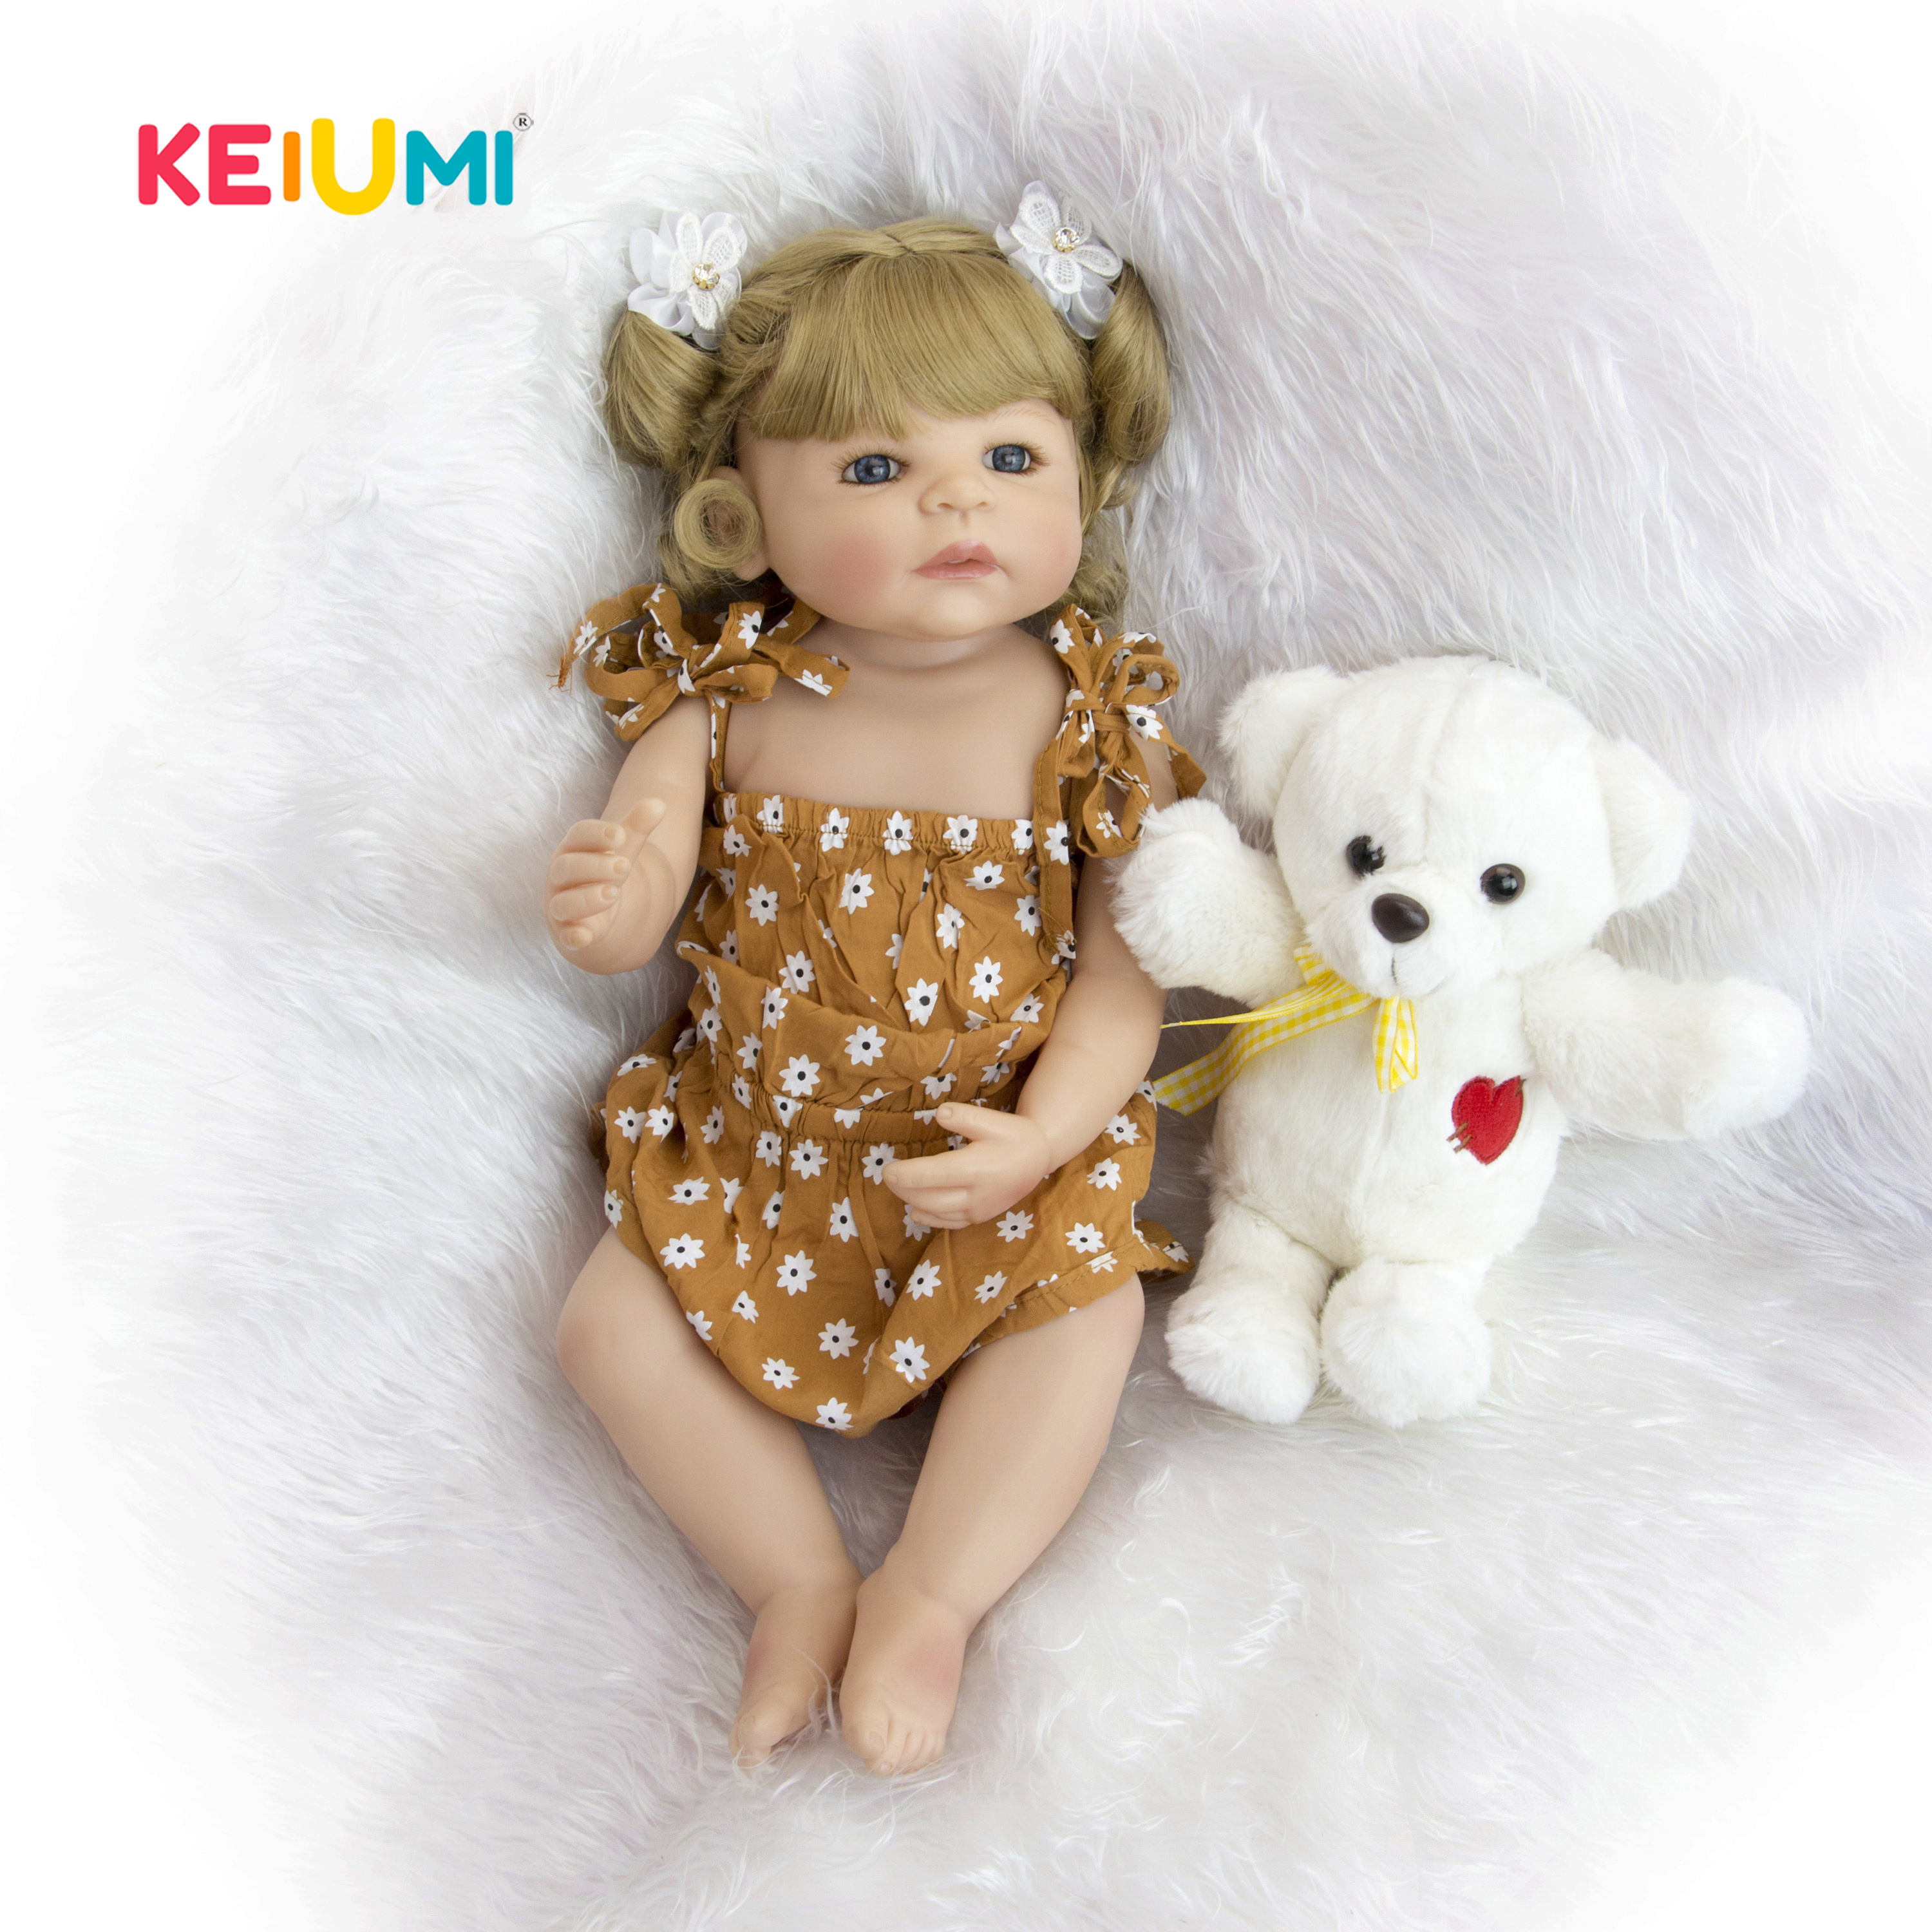 New Style Silicone Full Body Reborn Dolls 22 55 cm Realistic Newborn Girl Babies Doll With